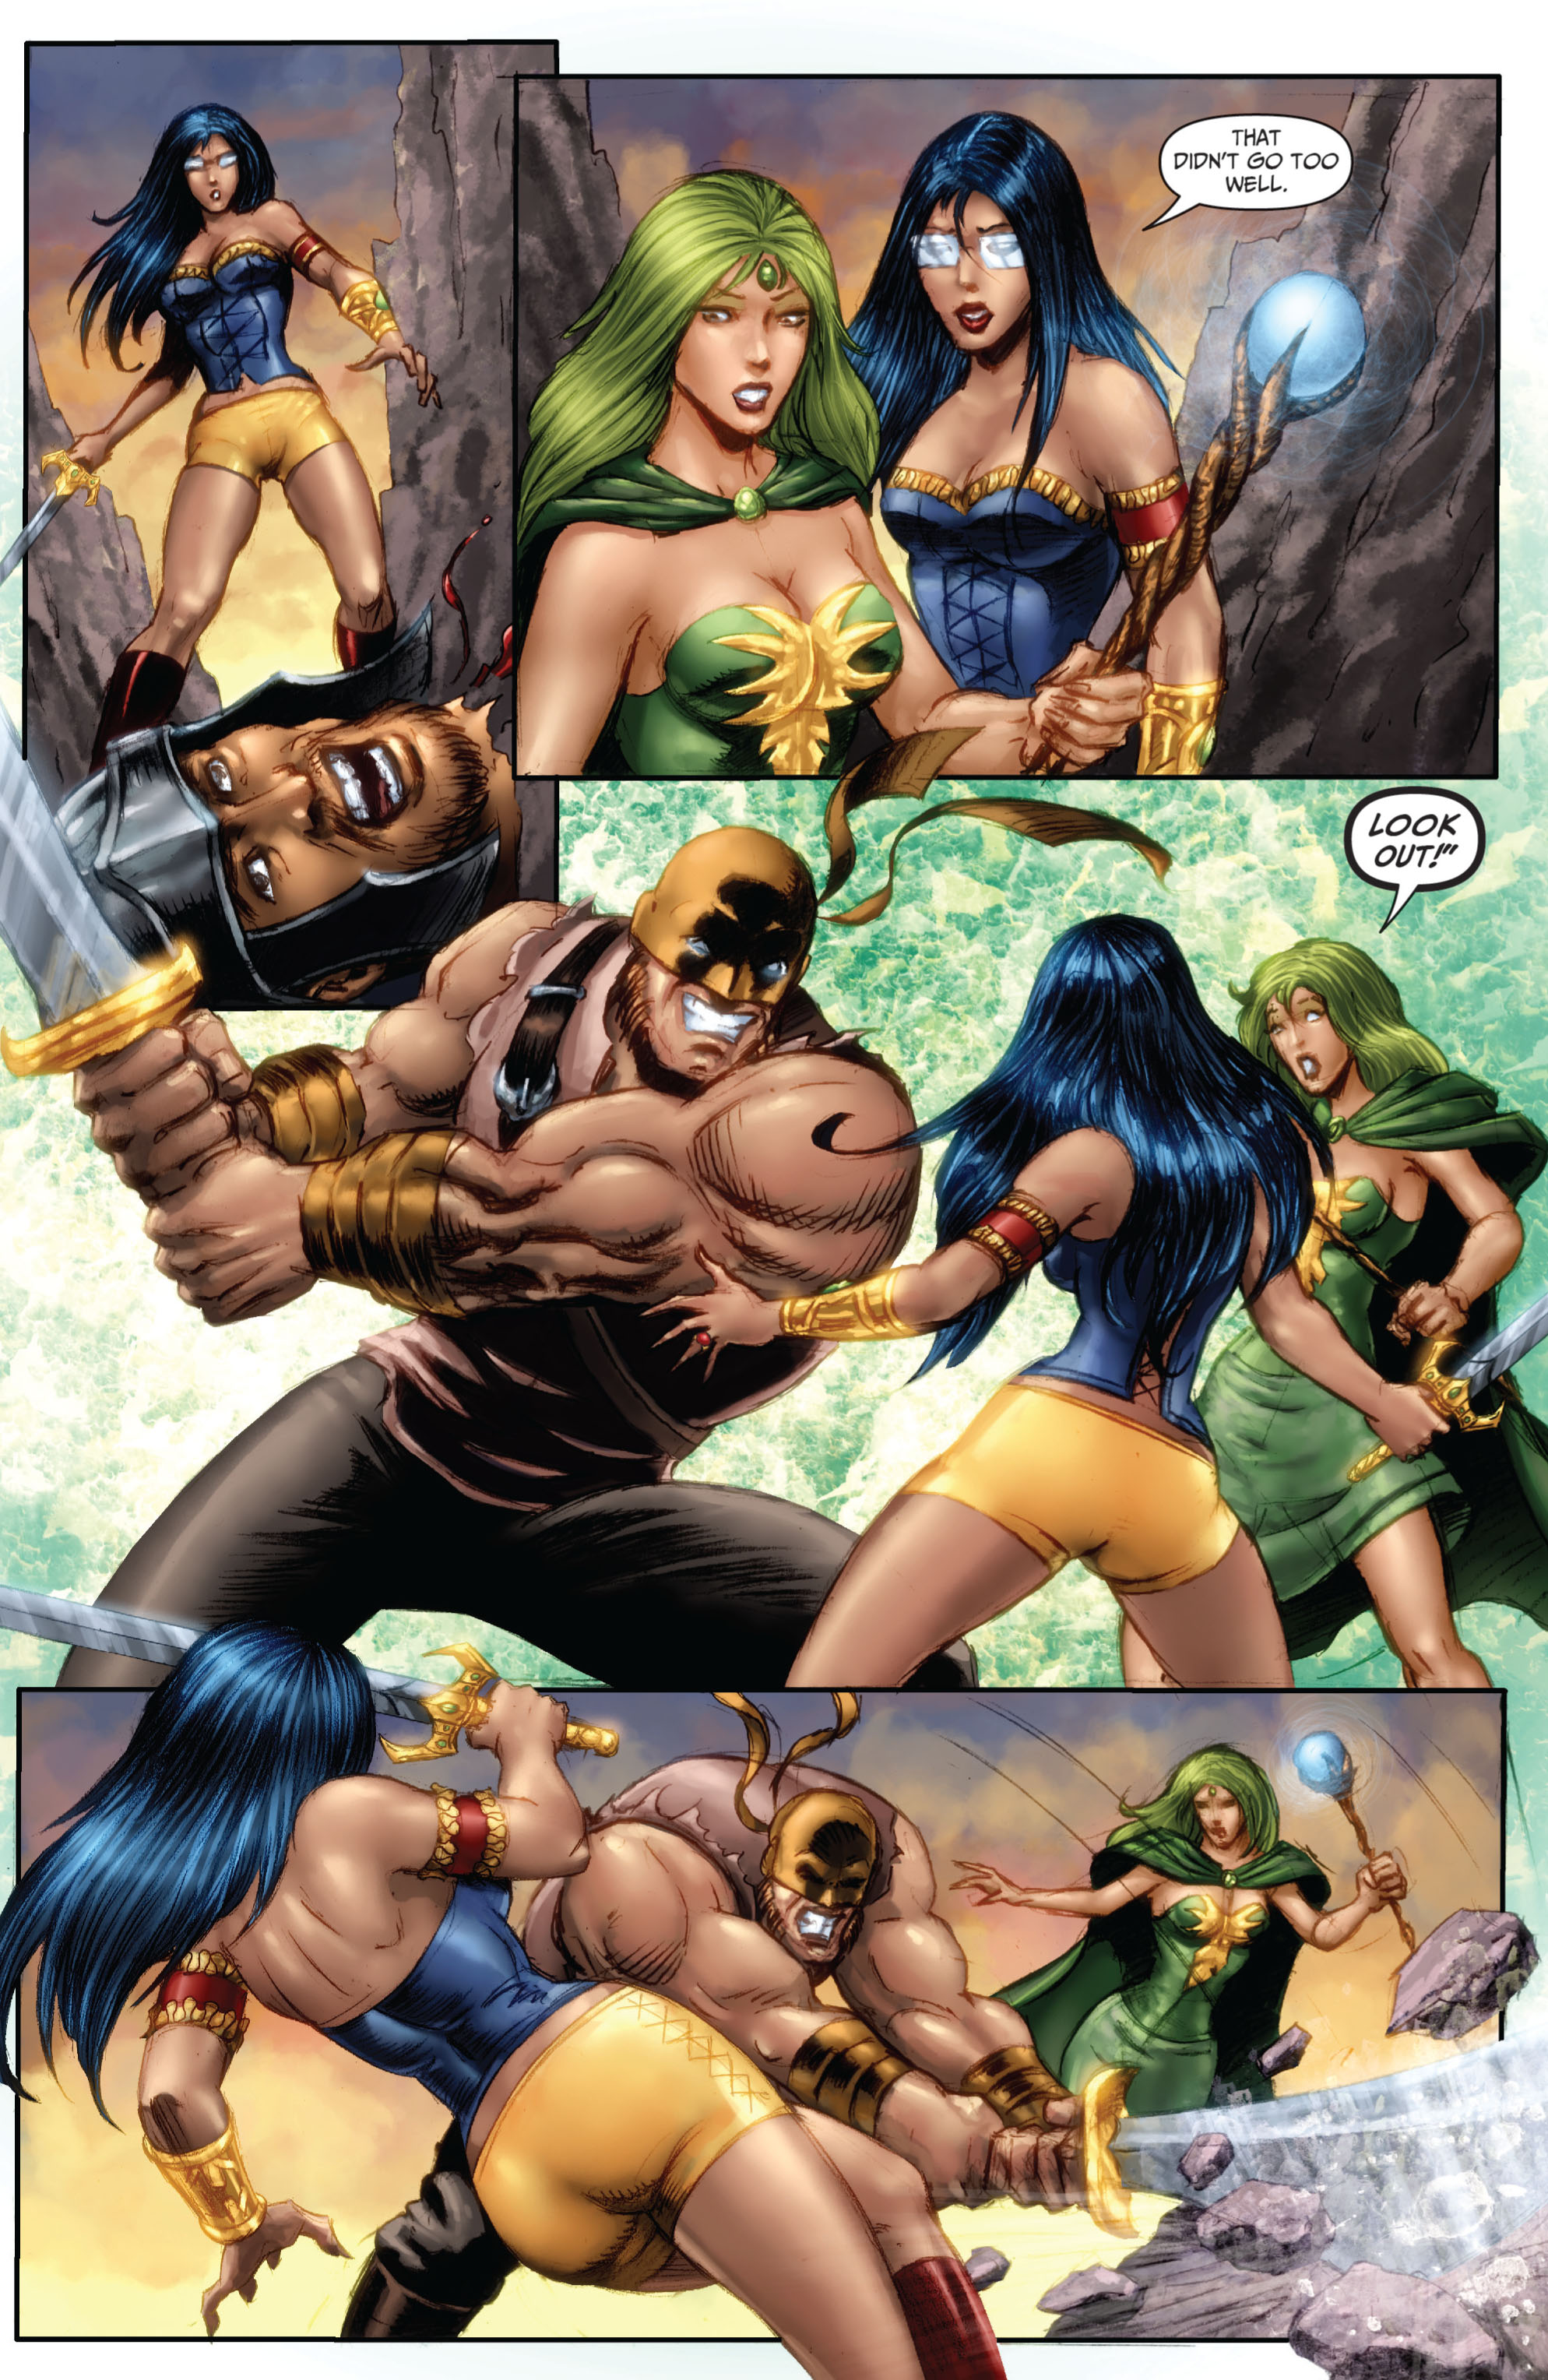 Grimm Fairy Tales (2005) Issue #67 #70 - English 7